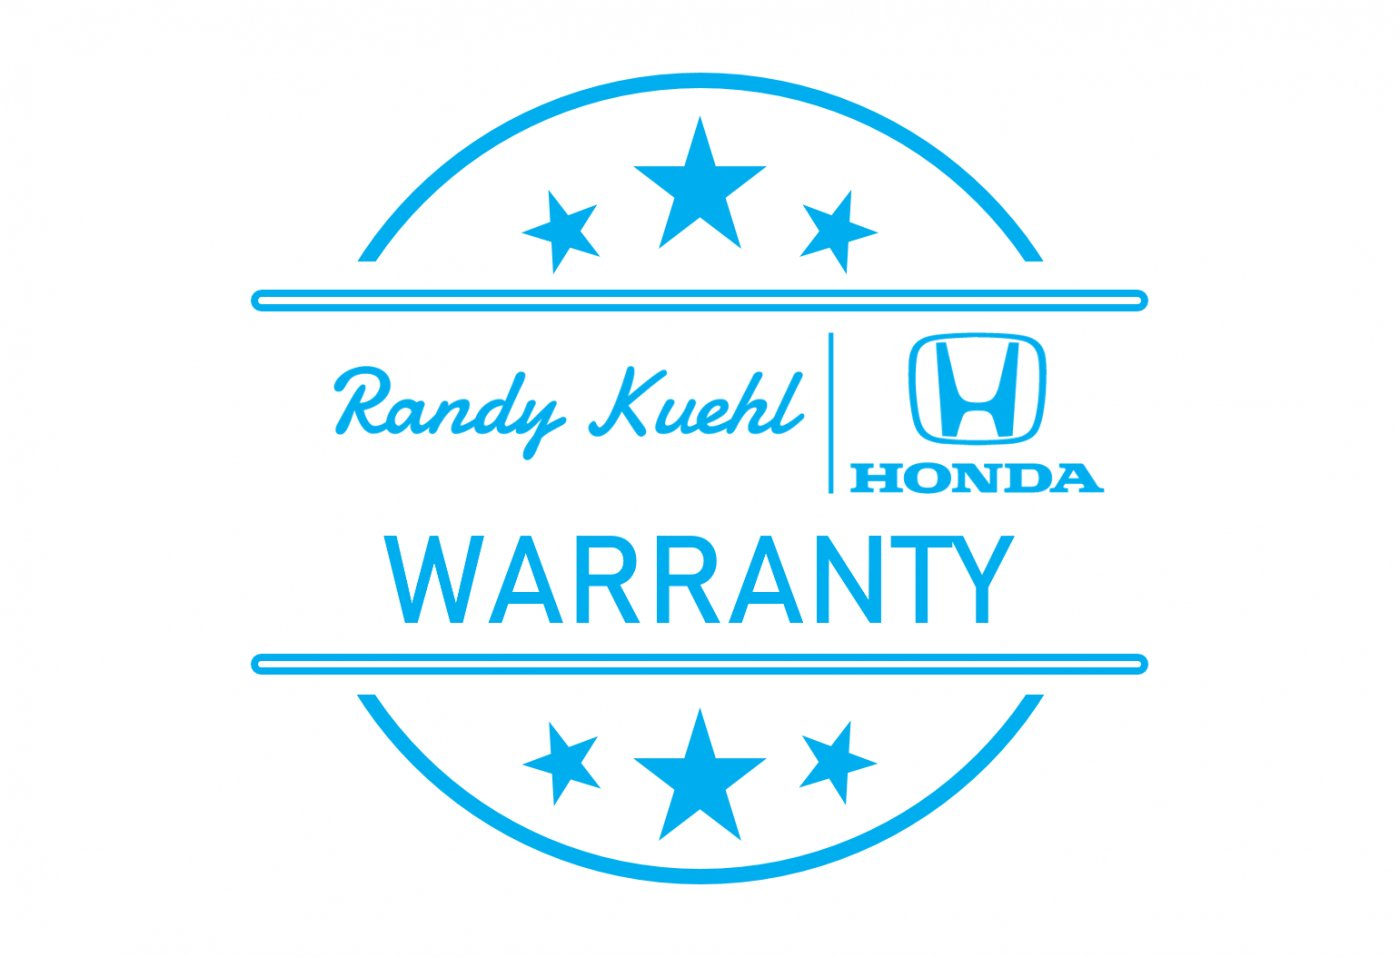 Randy Kuehl Honda Warranty